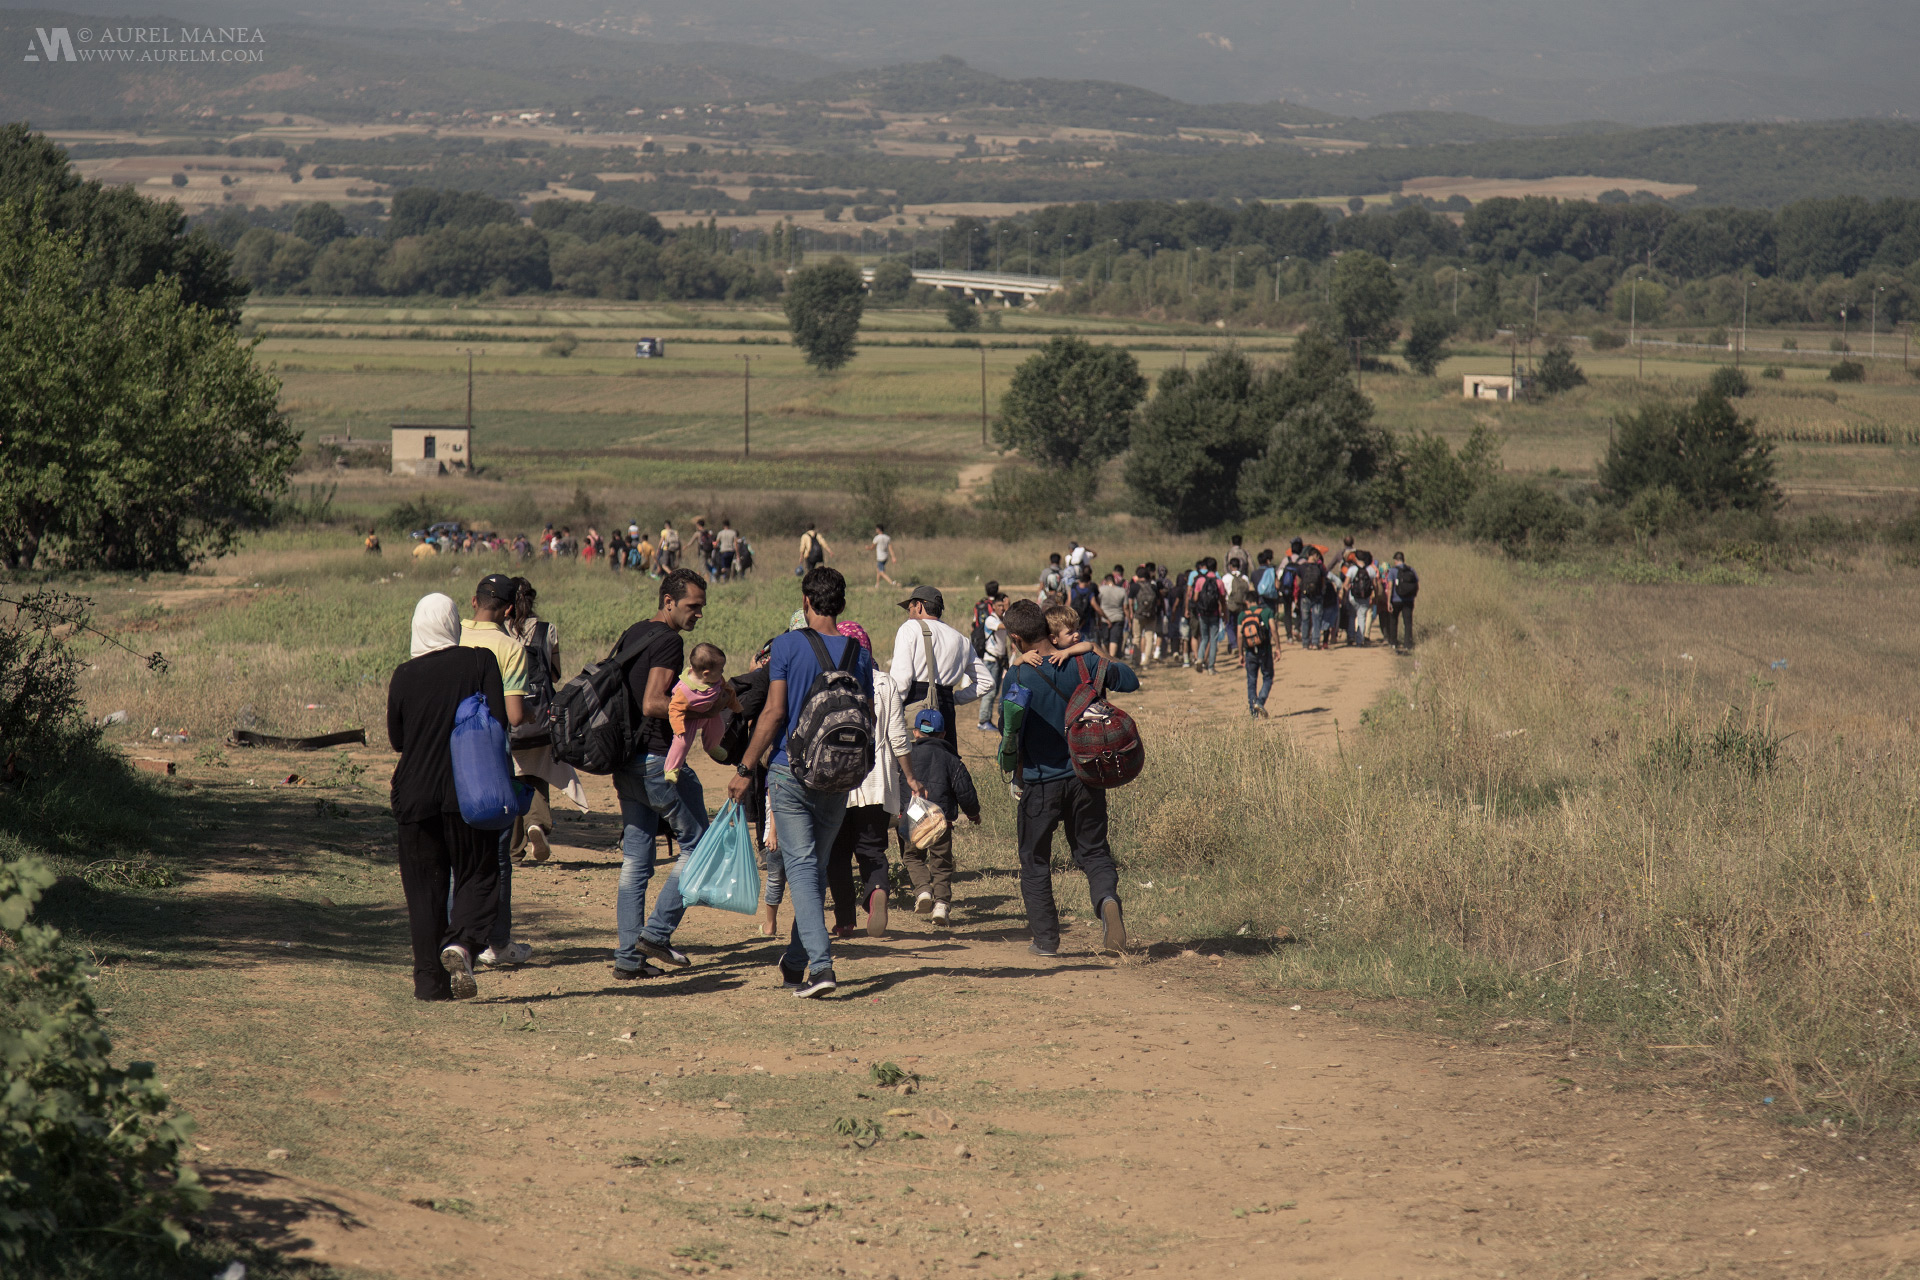 emigrants-Greece-Macedonia-border-01